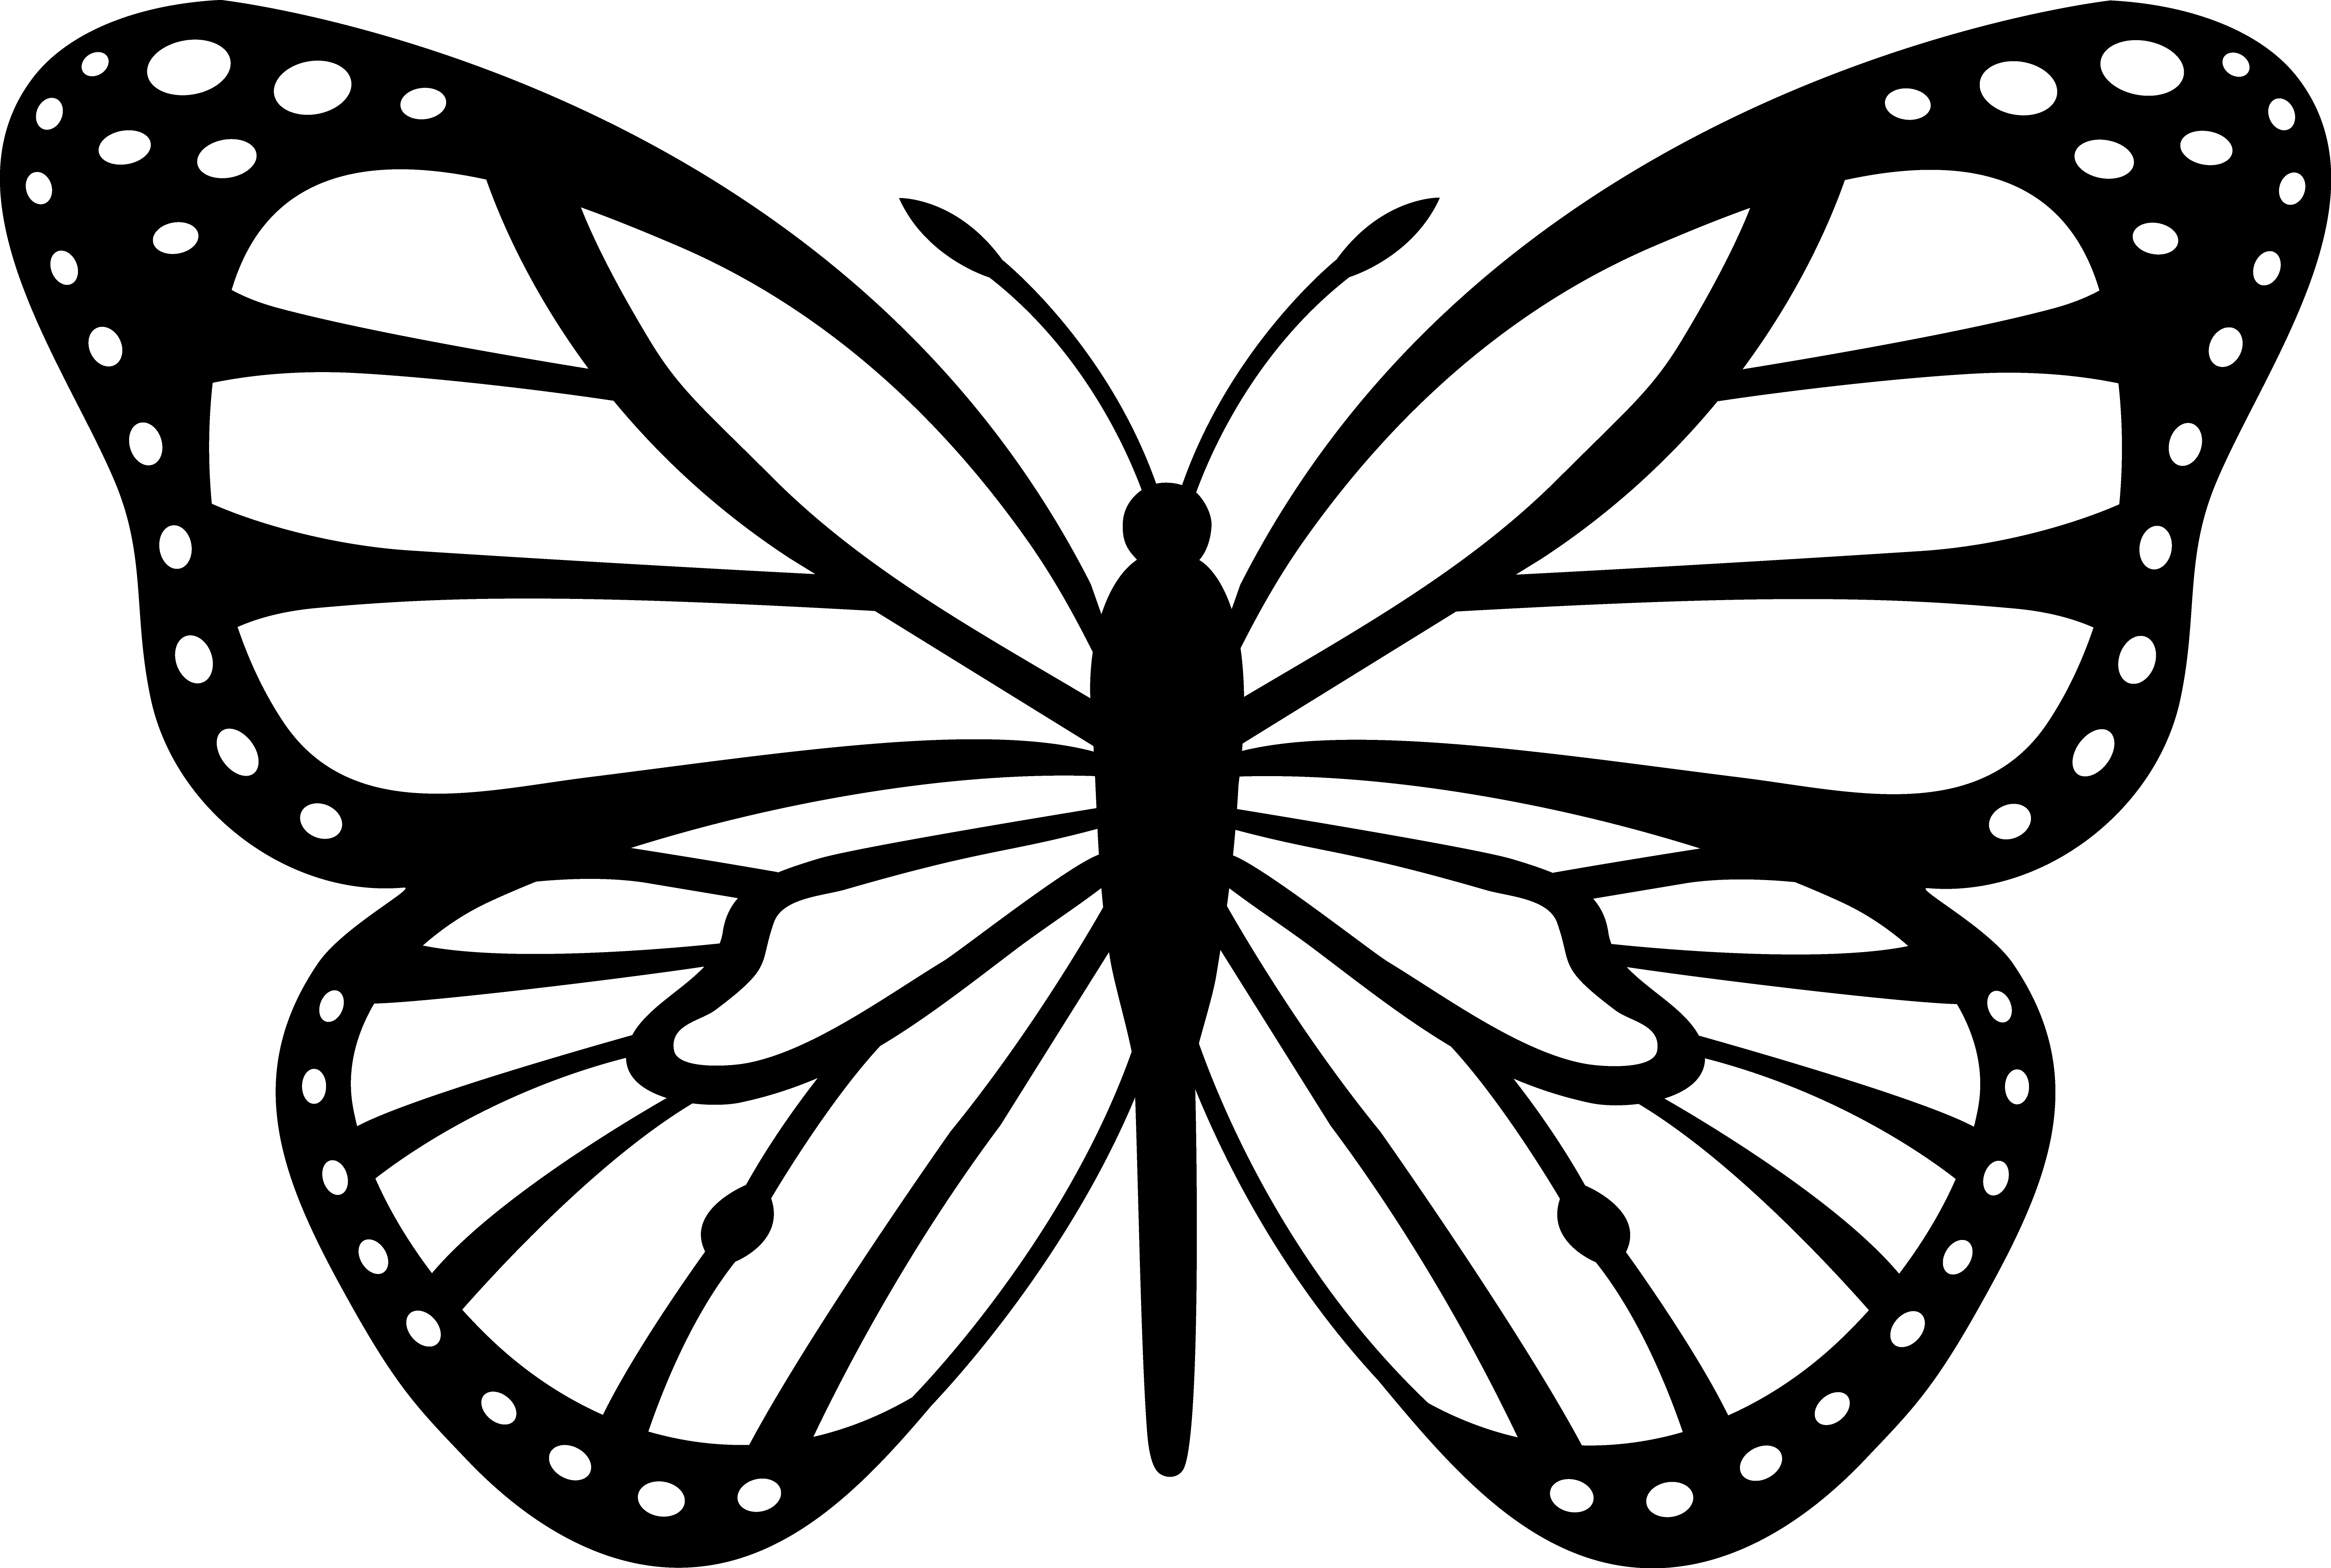 monarch butterfly coloring page monarch butterfly coloring page free printable coloring coloring page butterfly monarch